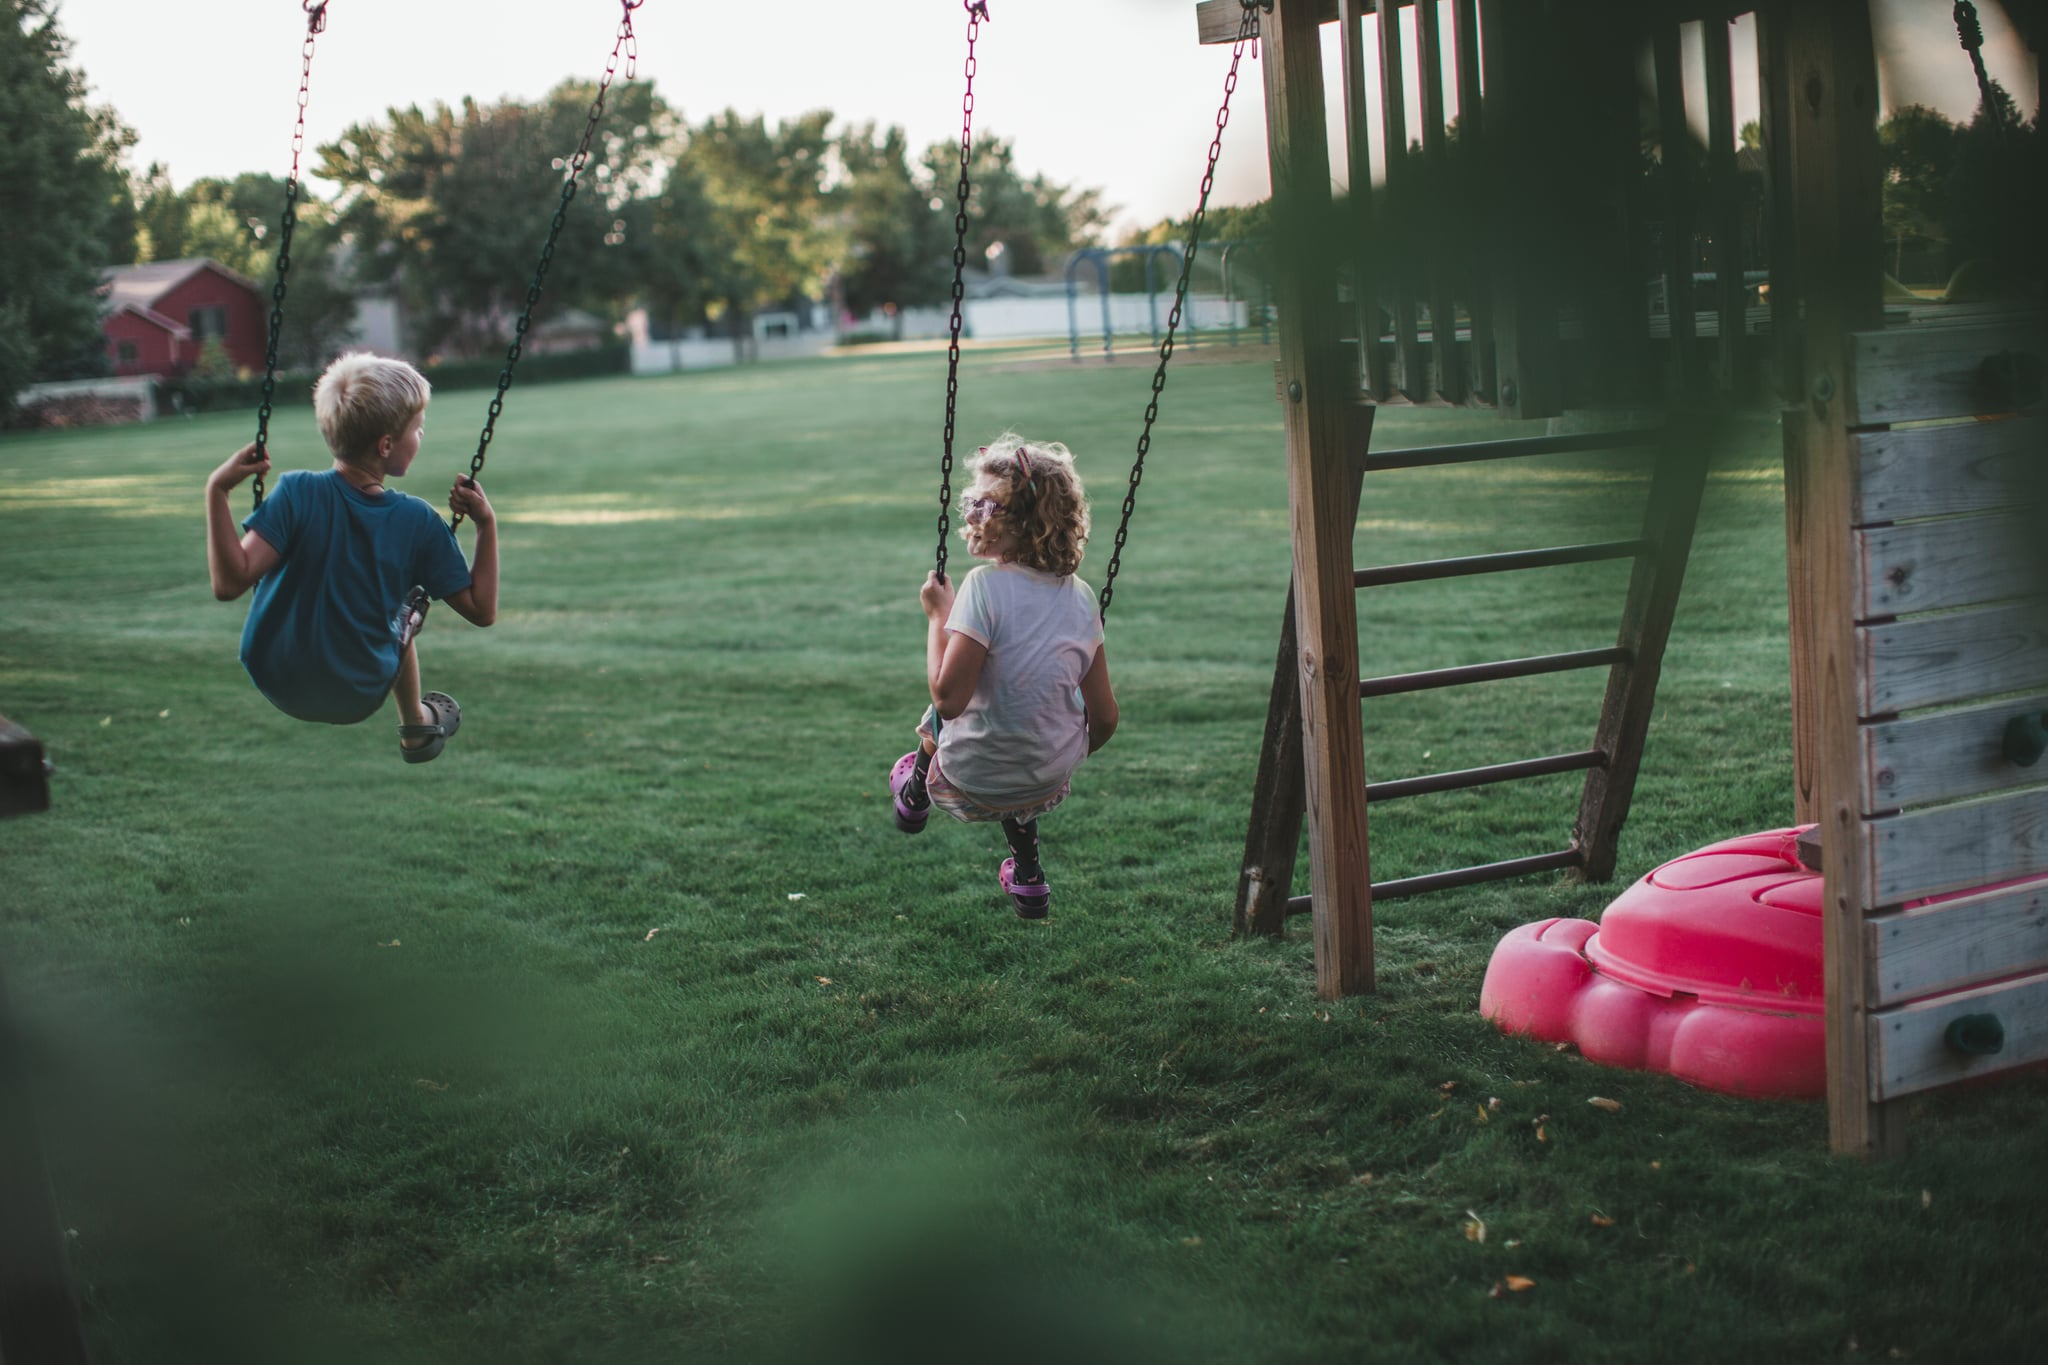 Girl and boy play together on a backyard swing set playground swinging back and forth while looking at each other and chatting.